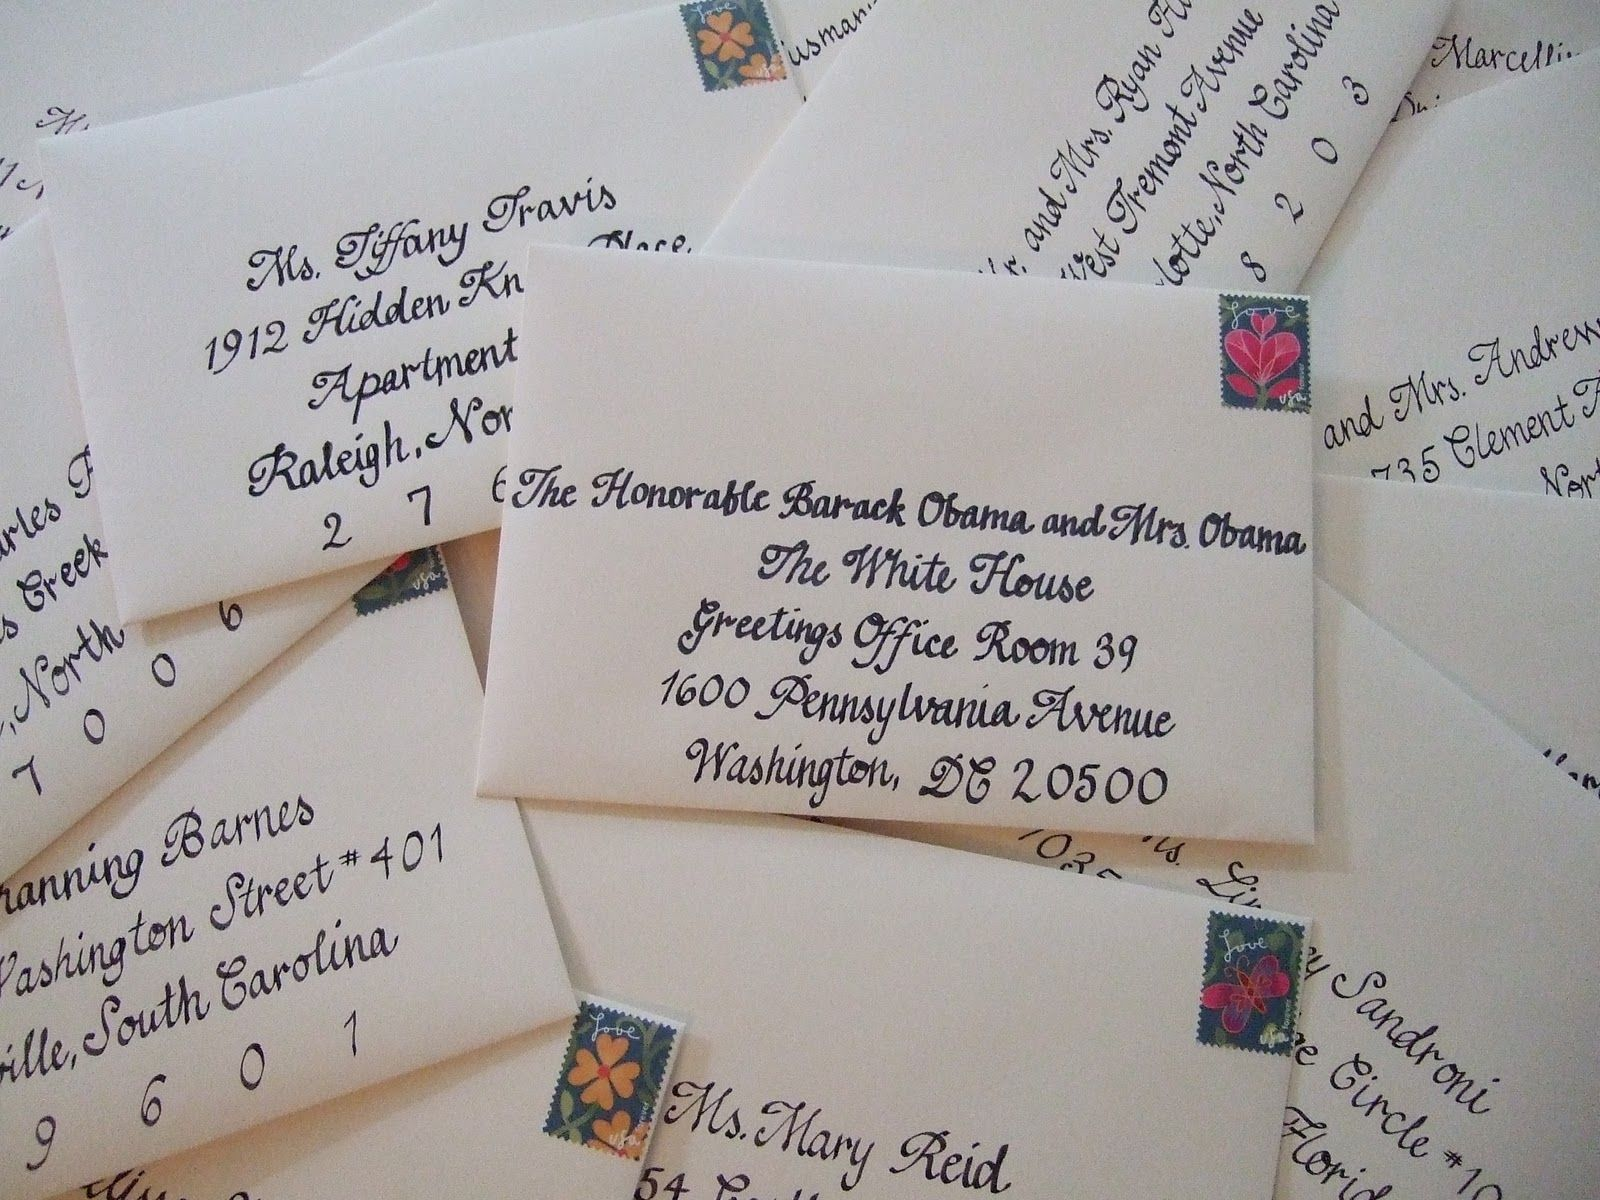 When Do You Send Invitations For Wedding: Send A Wedding Invitation To The President & You'll